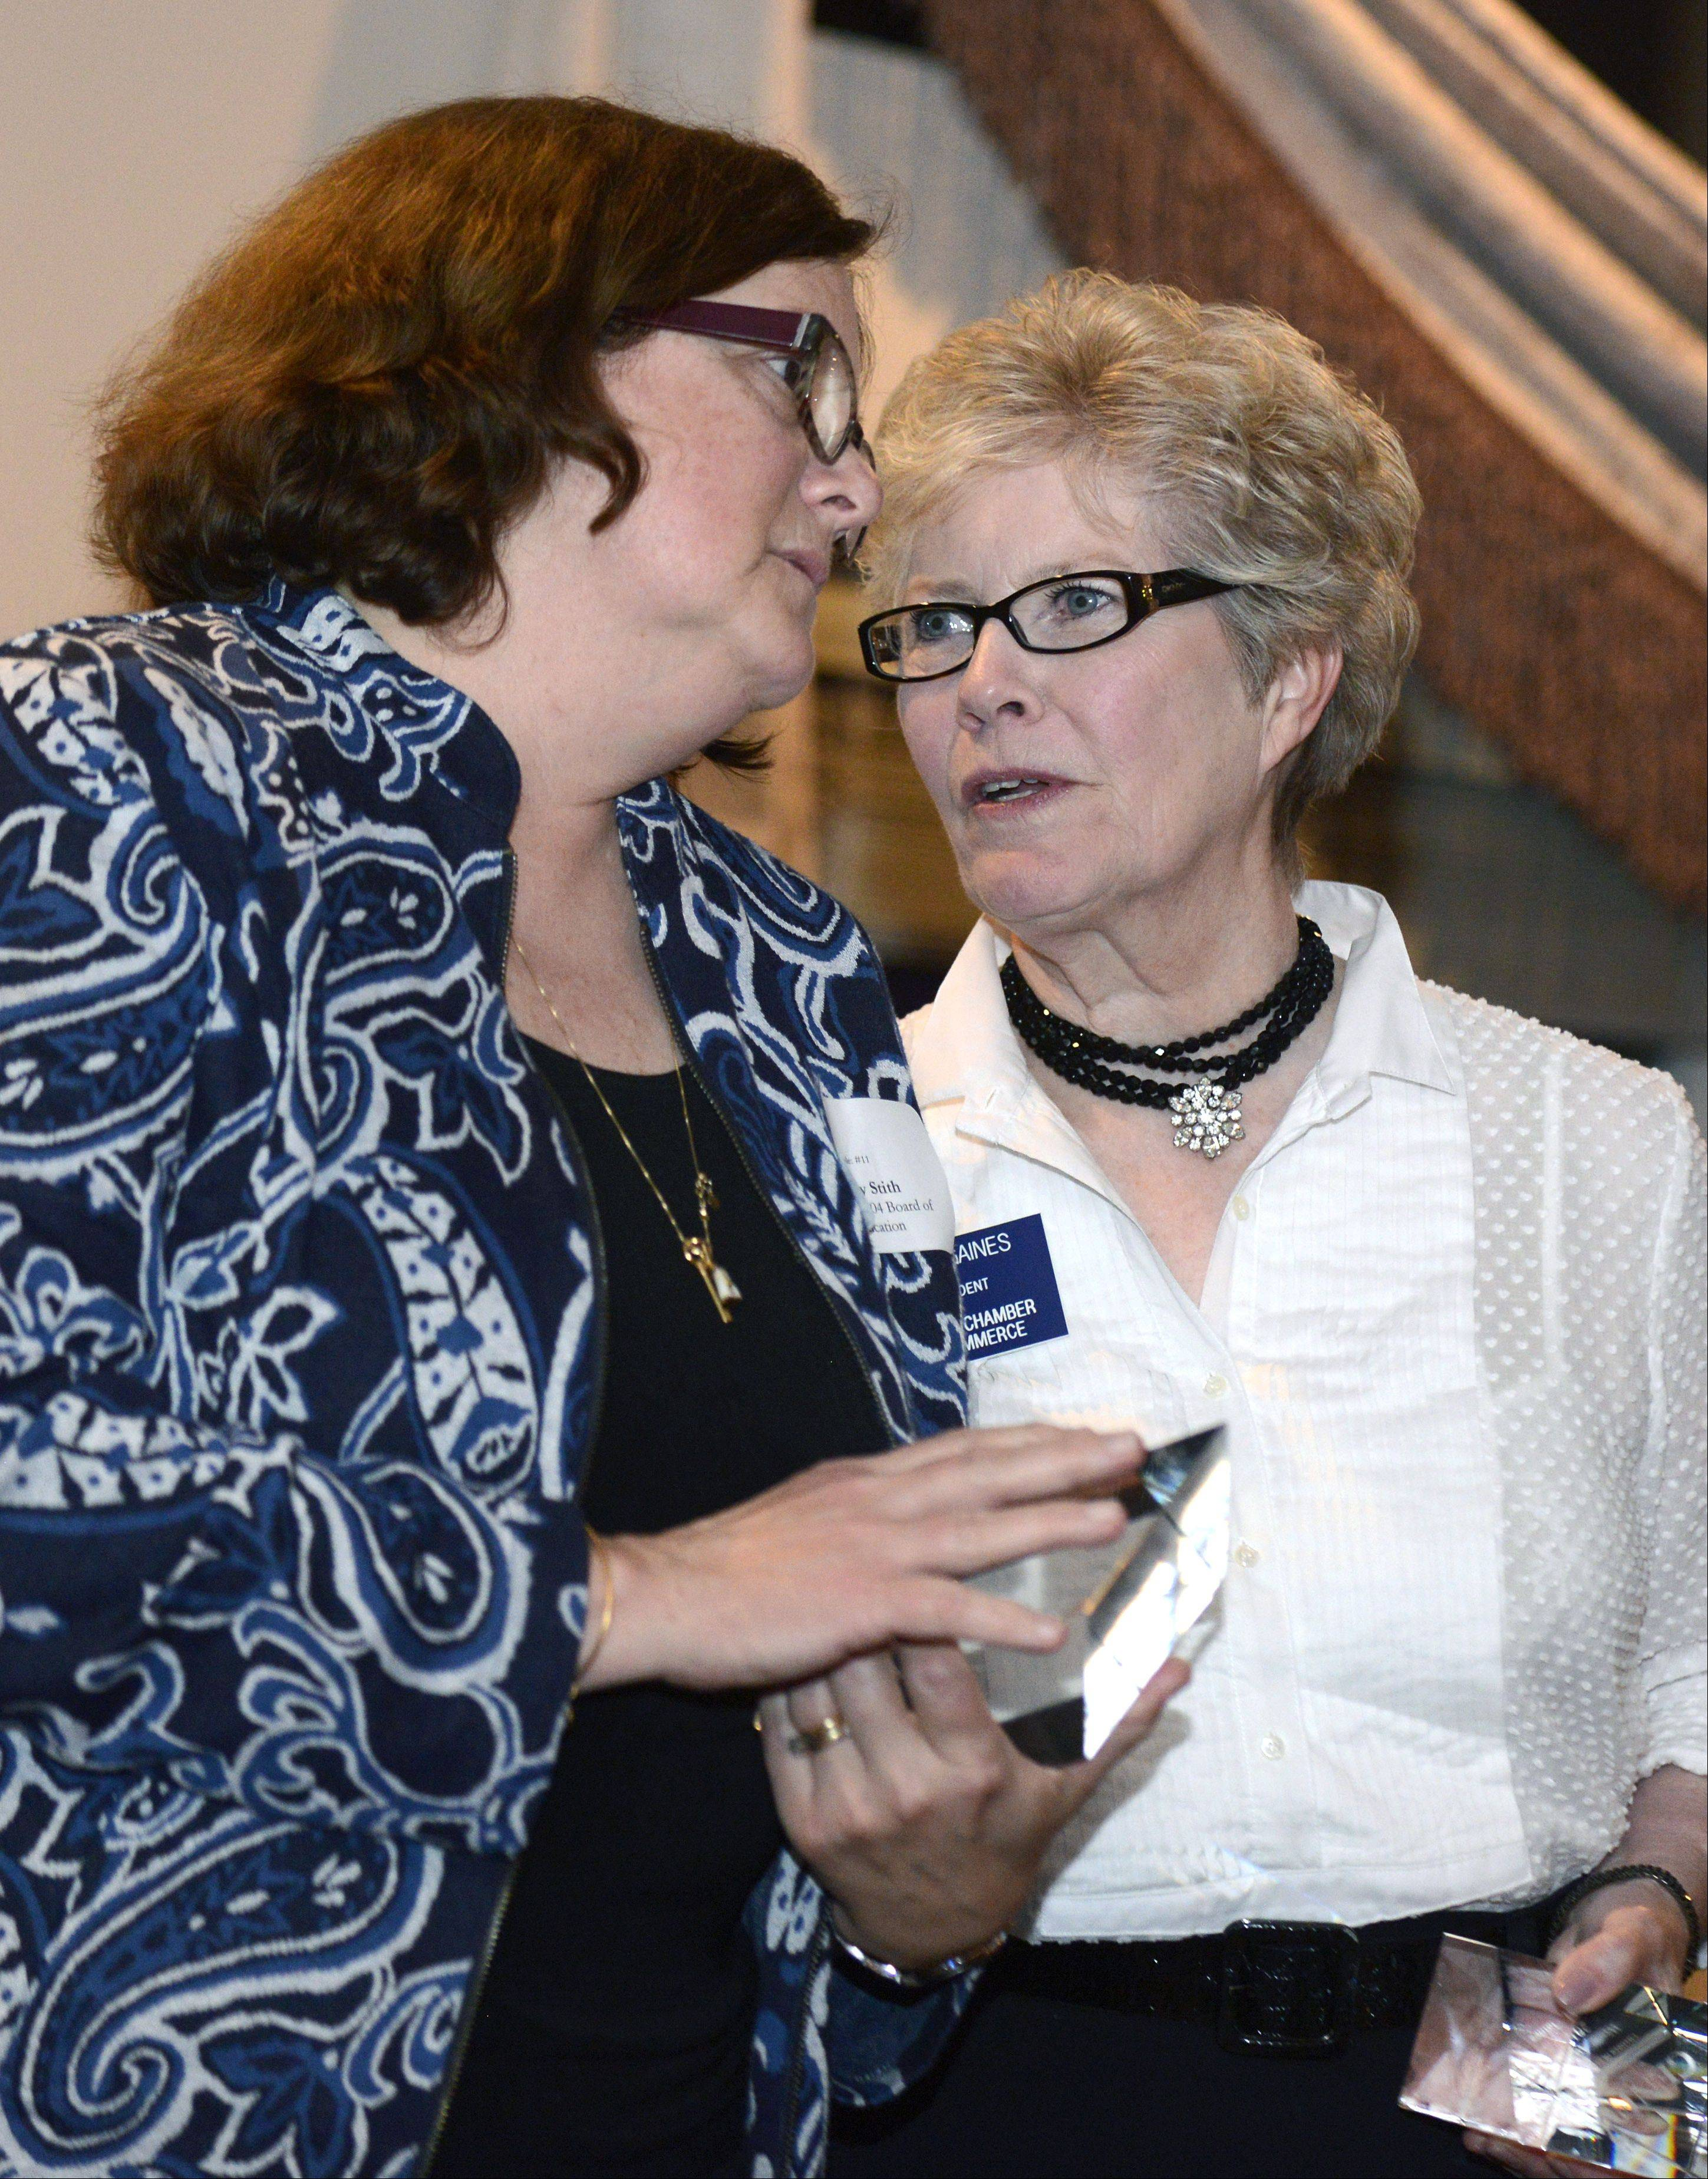 This year's Wood Award recipients. Geneva school board member Mary Stith, left, and Geneva chamber executive director Jean Gaines chat, onstage after receiving their awards at the Geneva Country Club on Tuesday.